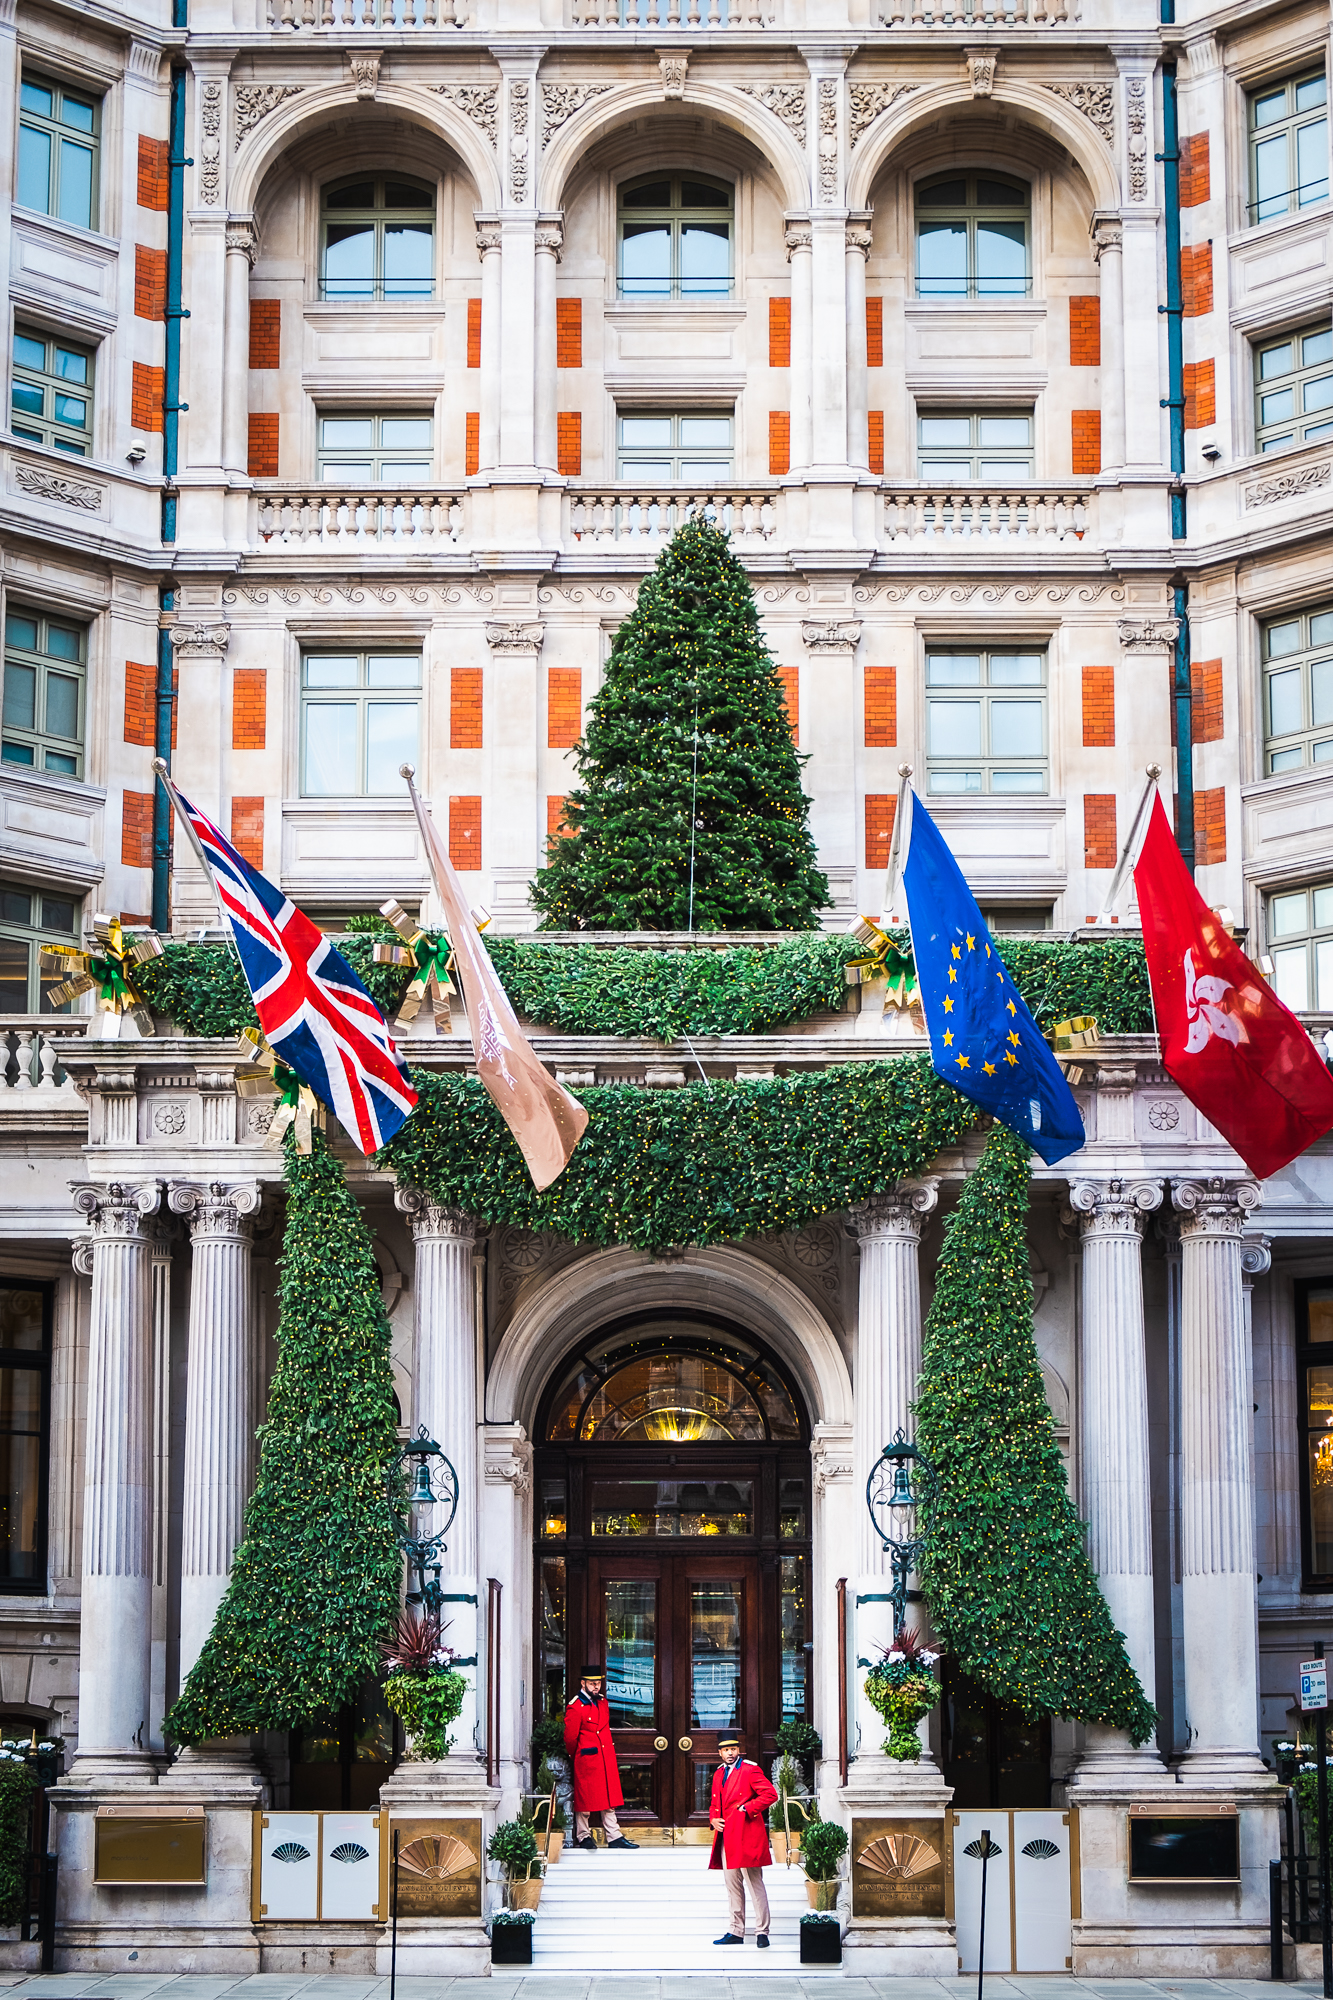 A photo of the Mandarin Oriental hotel in London at Christmas taken by Trevor Sherwin